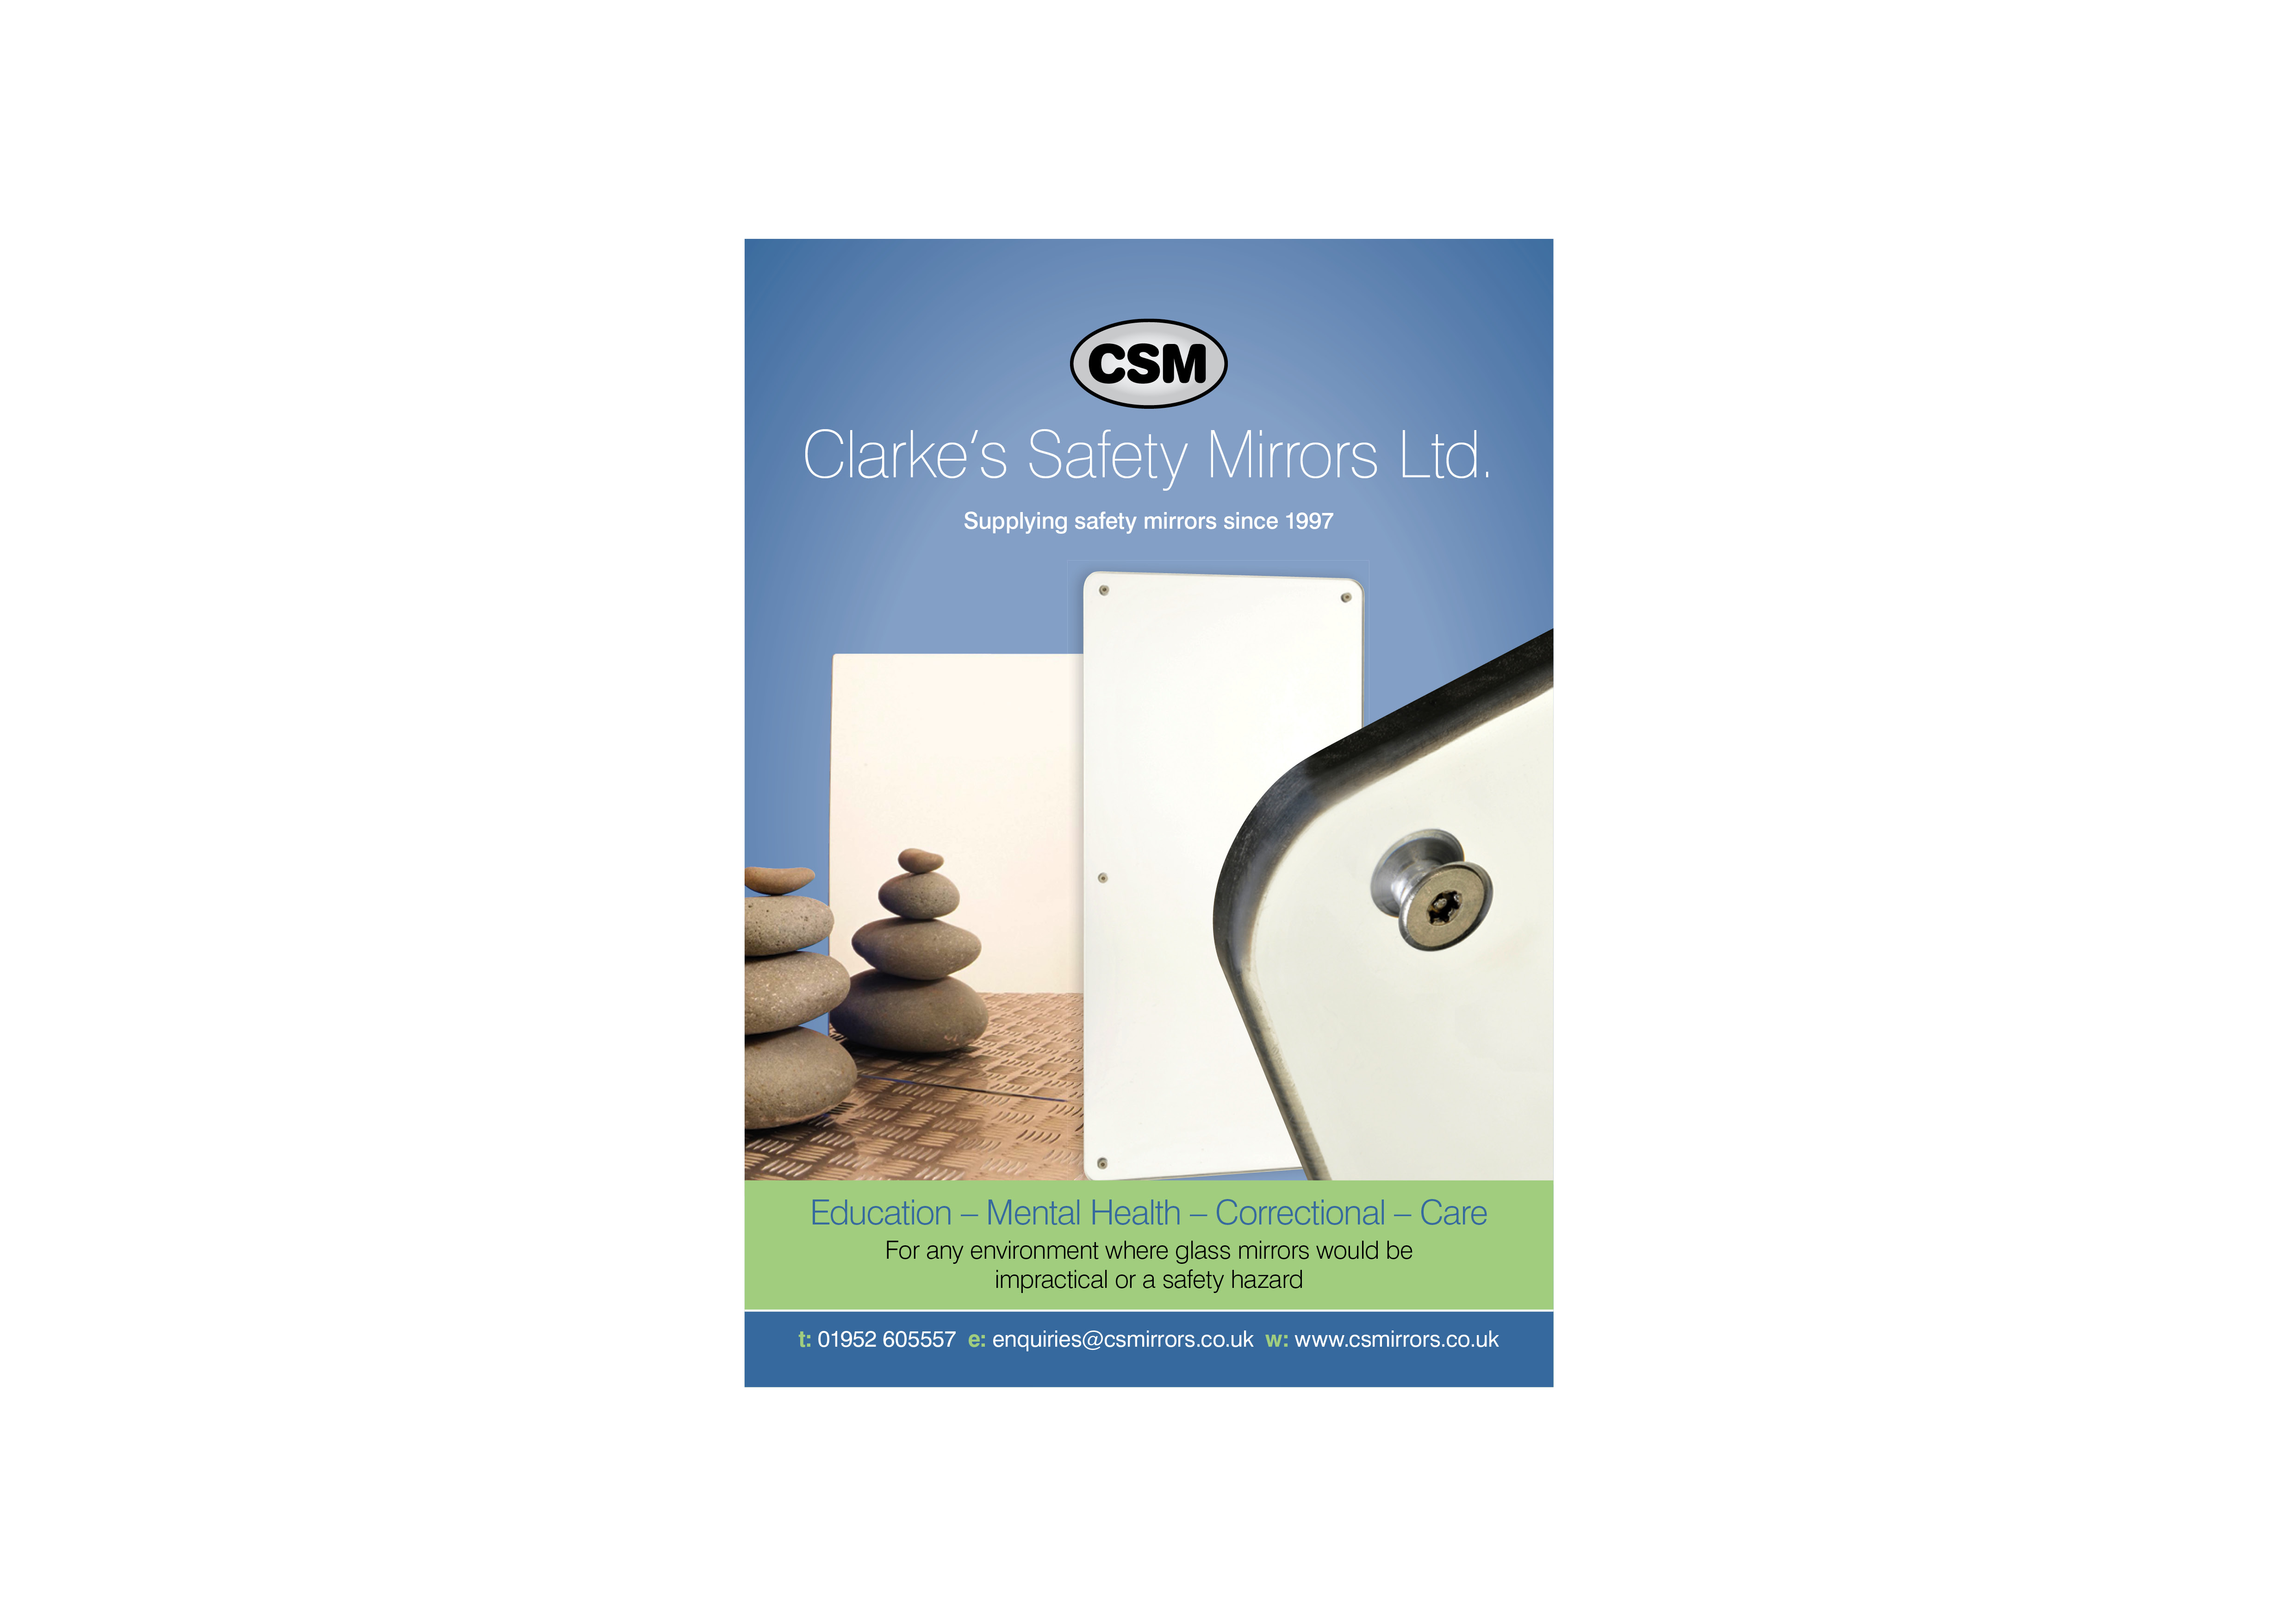 Trade Publication for CS Mirrors by Bare Bones Marketing